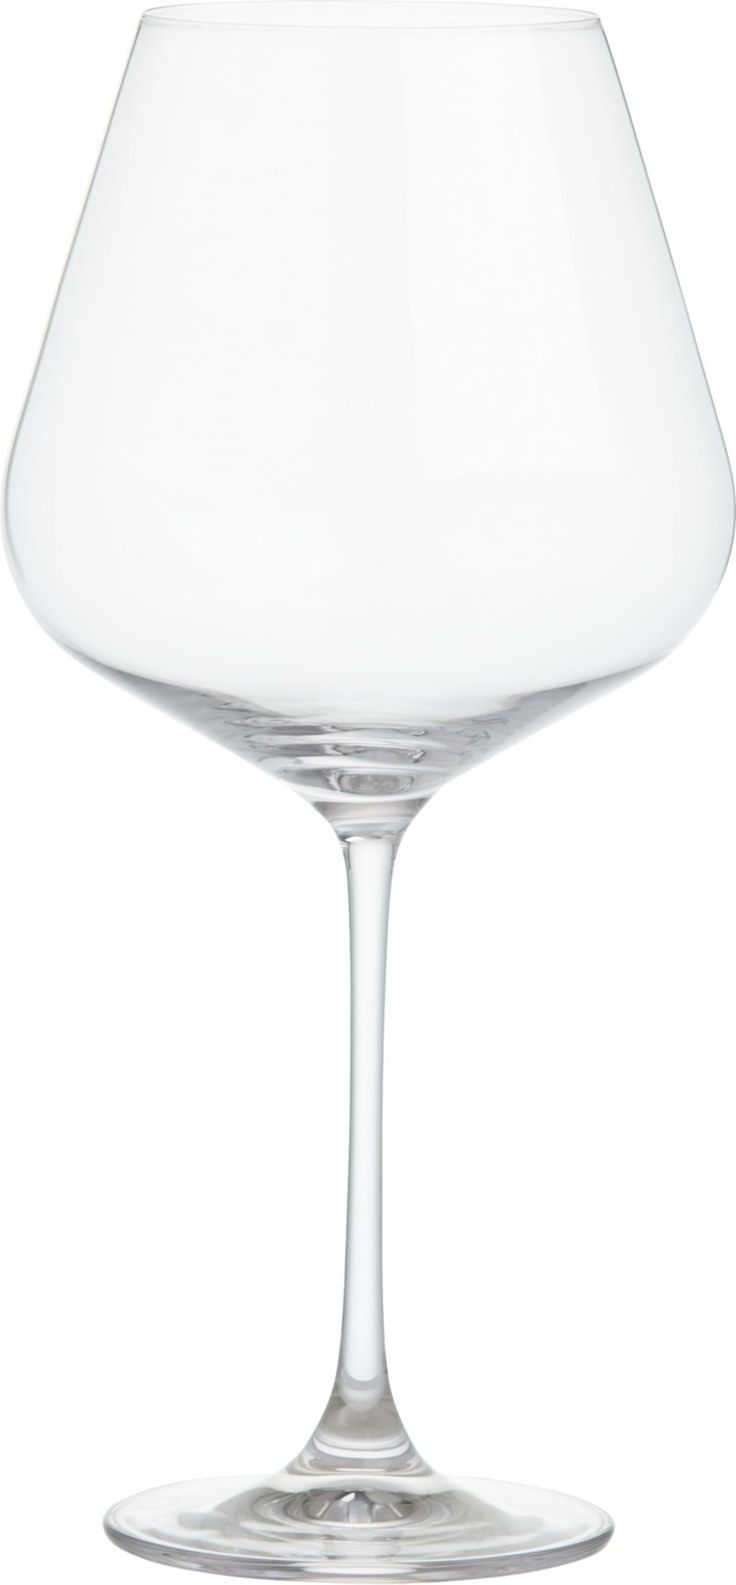 Best 25 oversized wine glass ideas on pinterest decorating with a handful of these would be nice oversized wine glass has a refined modern reviewsmspy